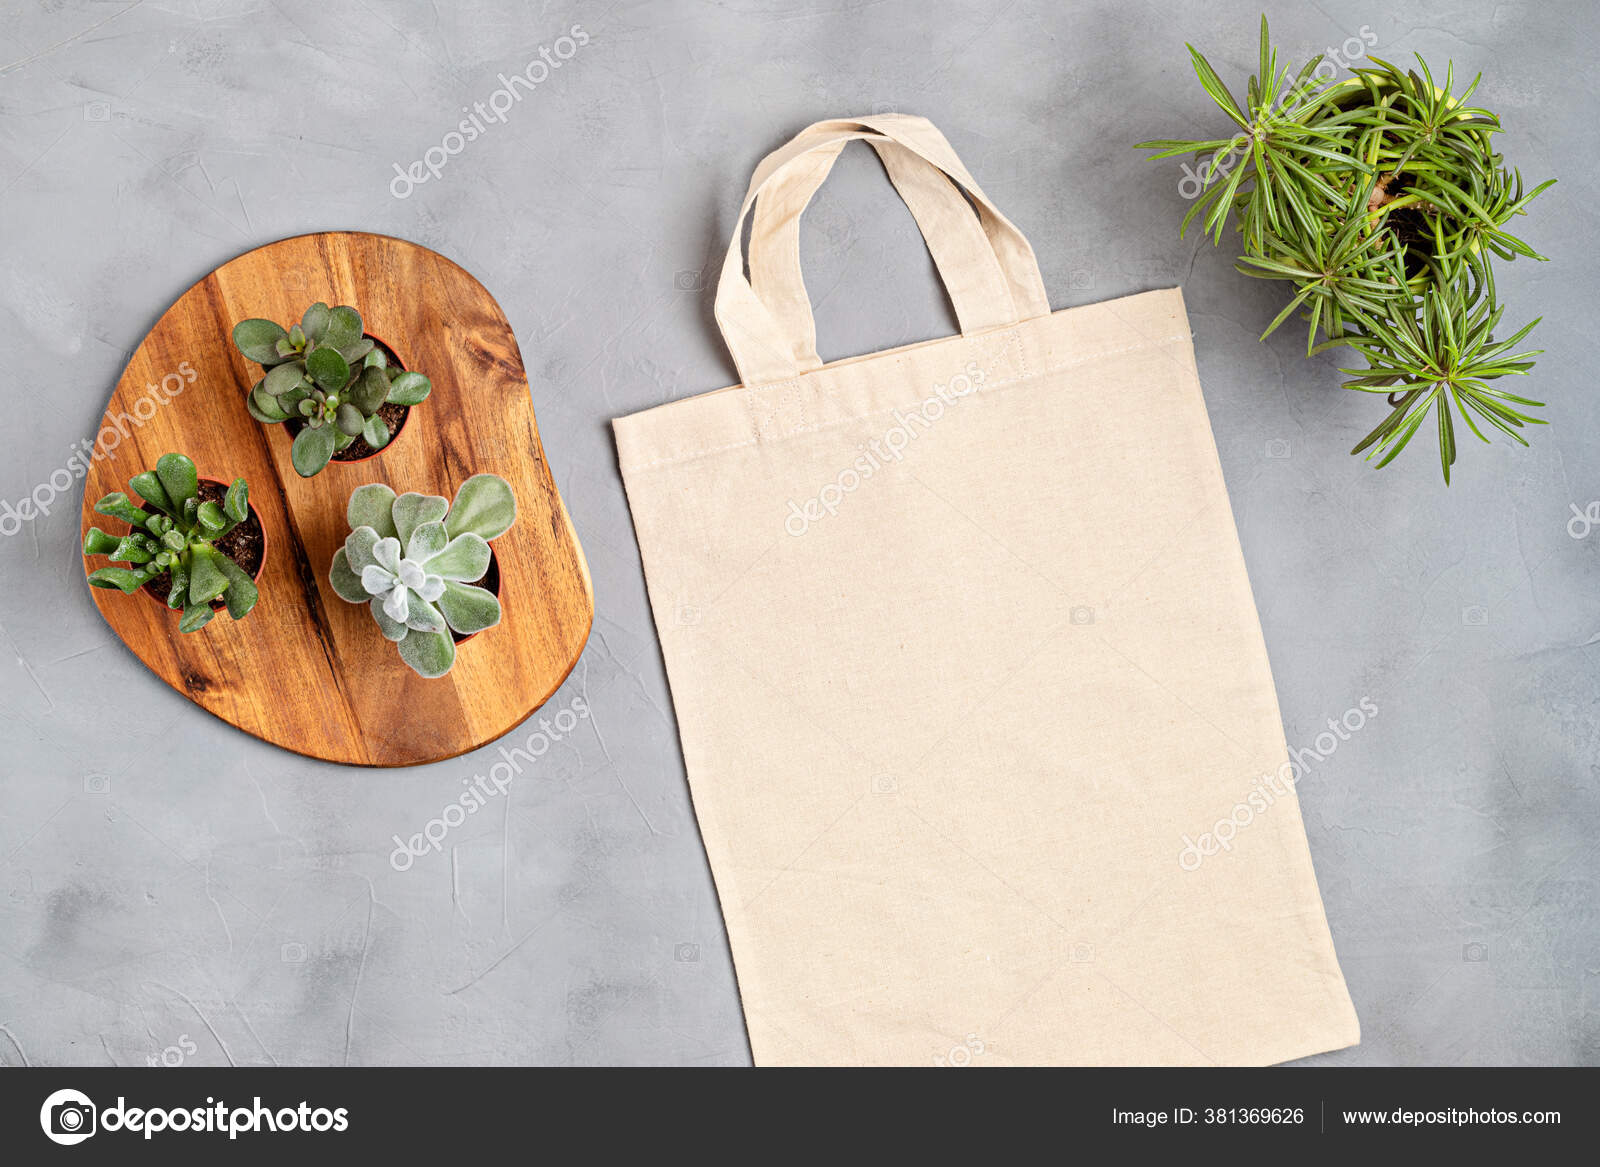 Showcase your brand on the go! Cotton Tote Bag Mockup Zero Waste Living Sustainability Eco Friendly Stock Photo By C Netrun78 381369626